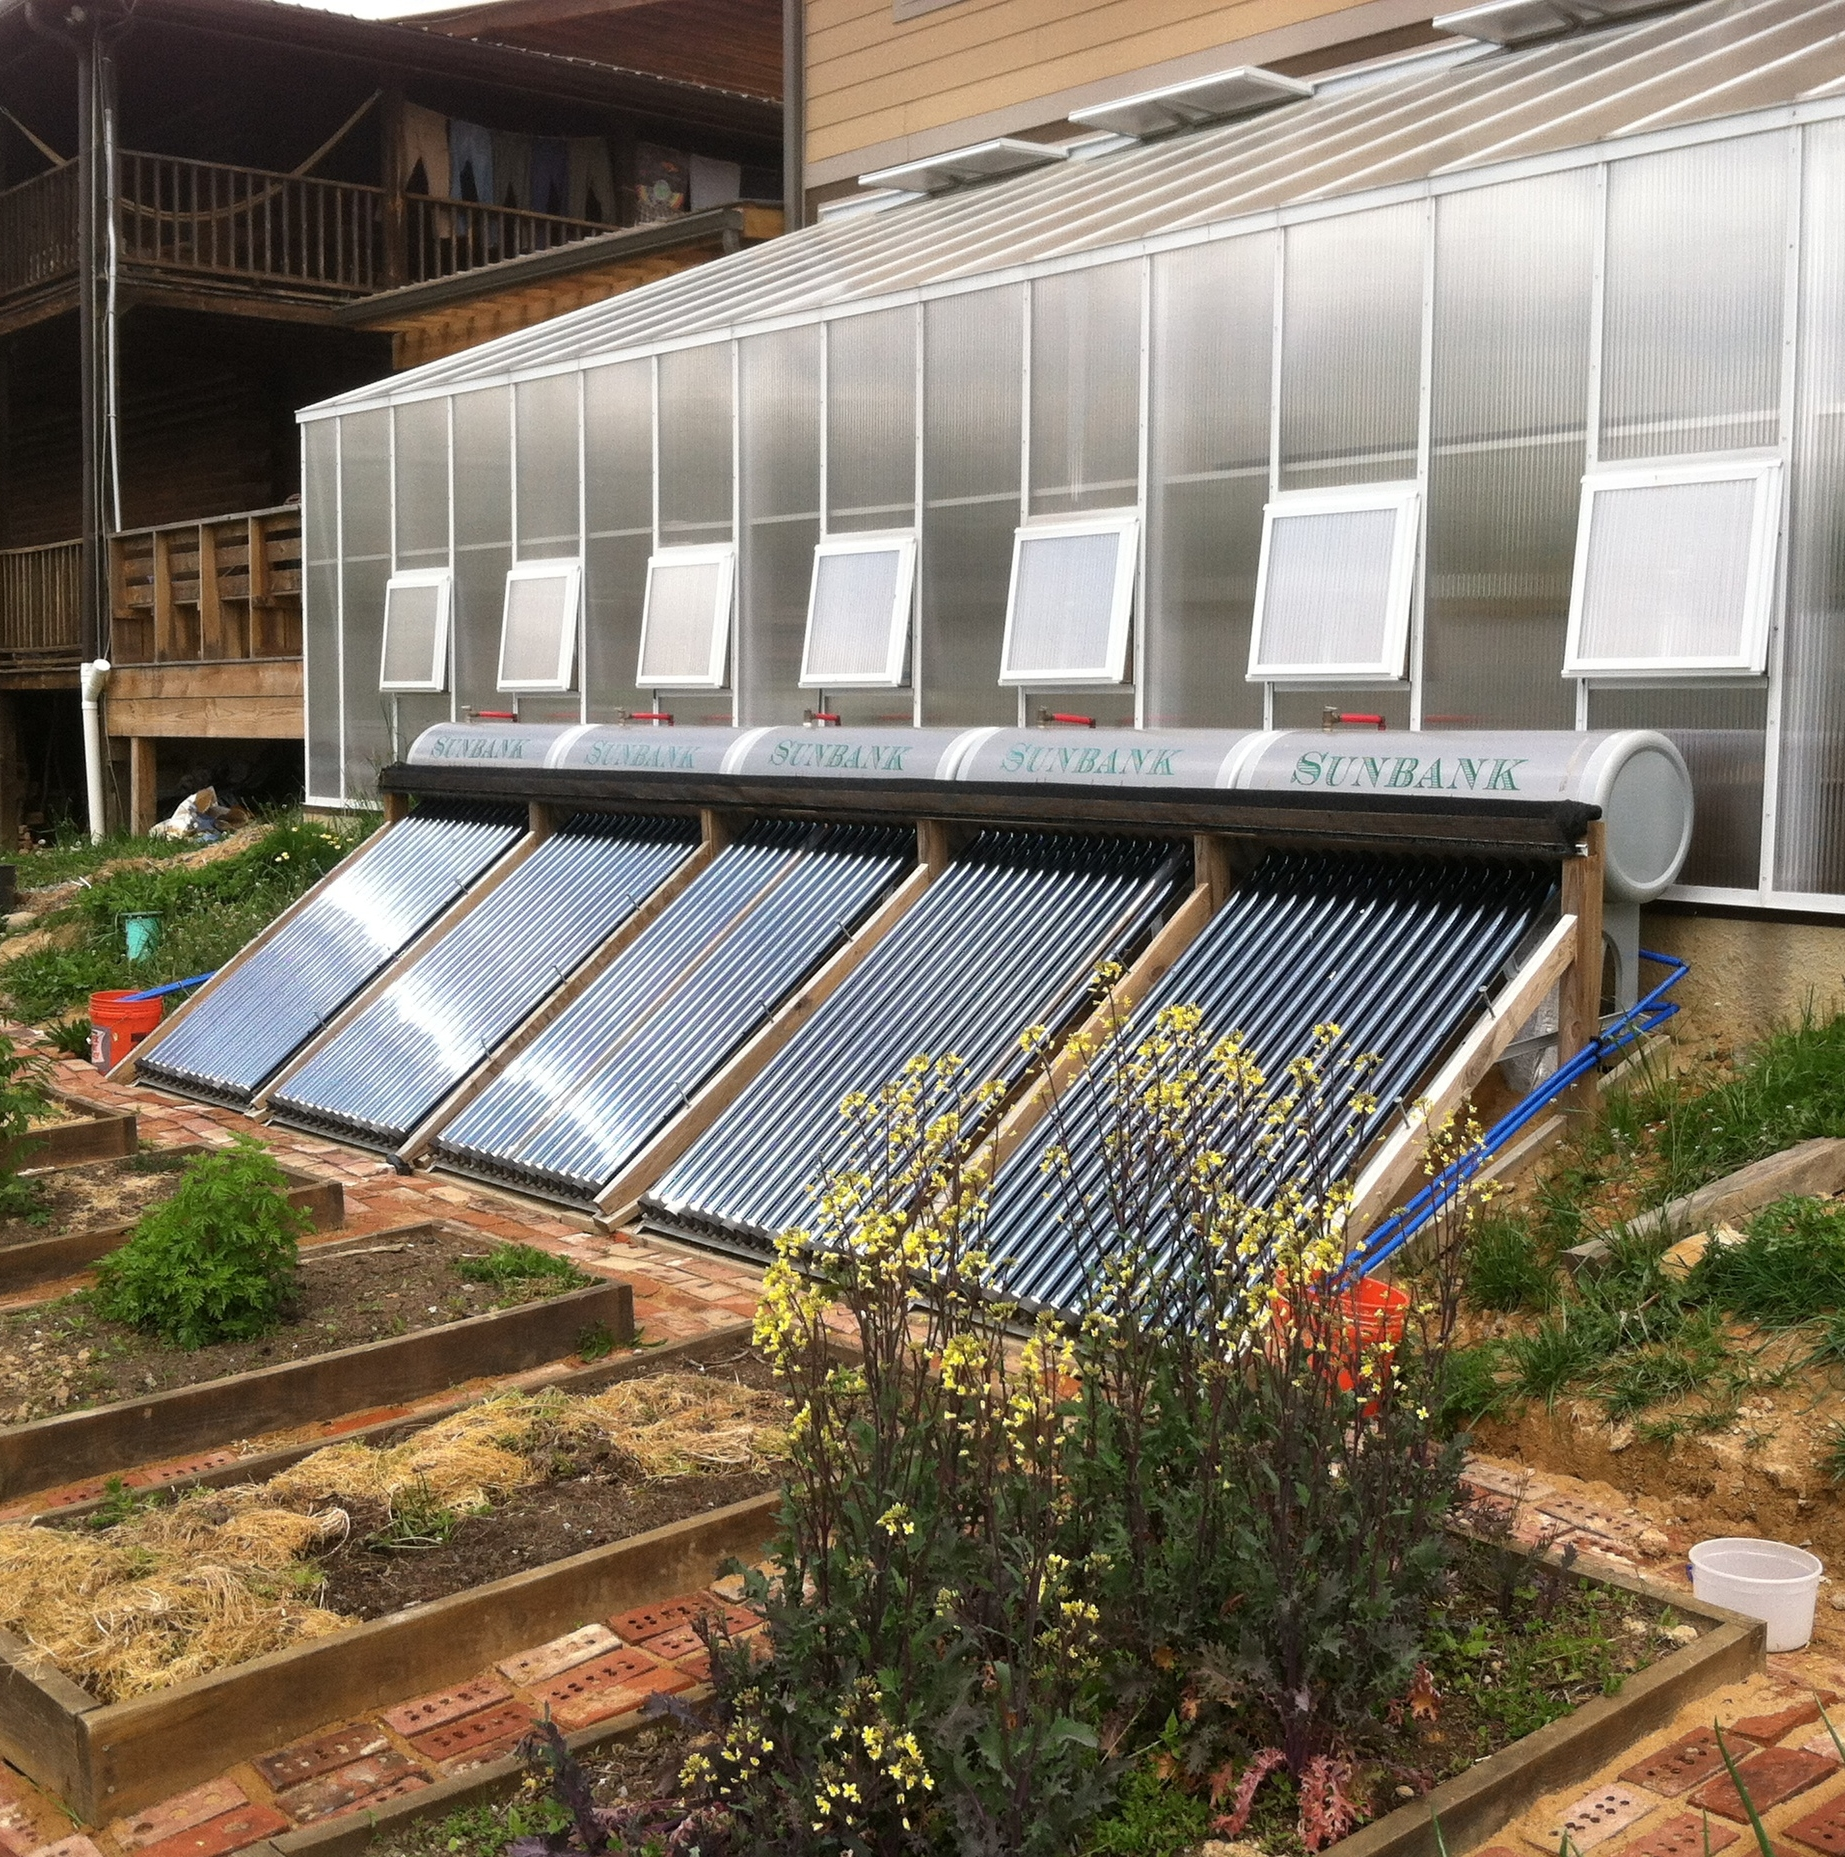 Radiant Hot Water system and Greenhouse